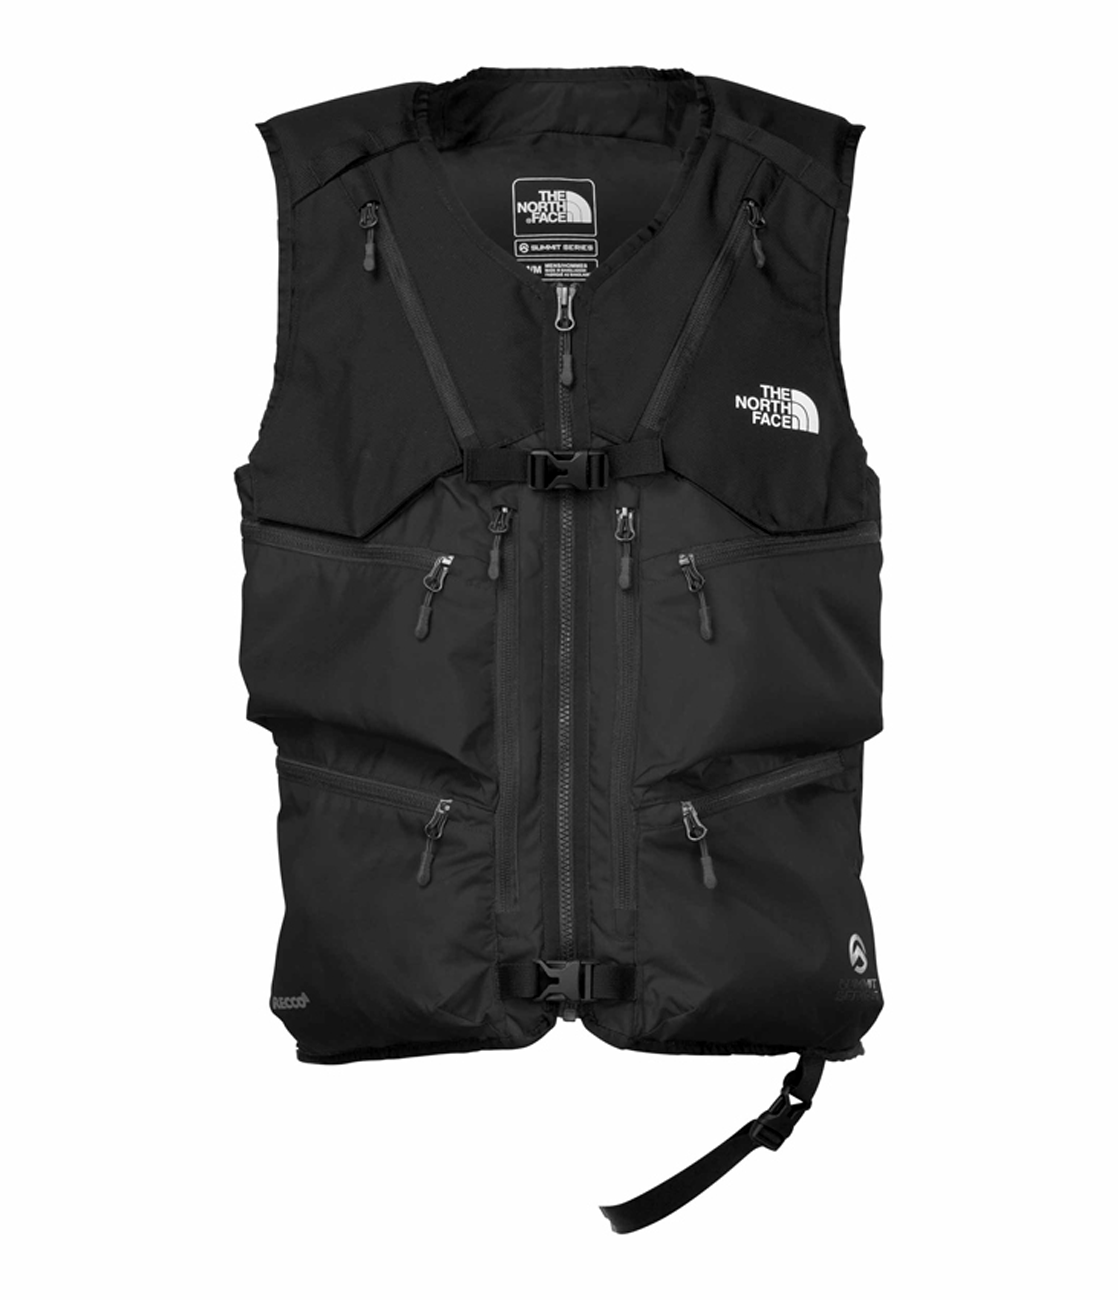 Designapplause Powder Guide Abs Avalanche Vest The